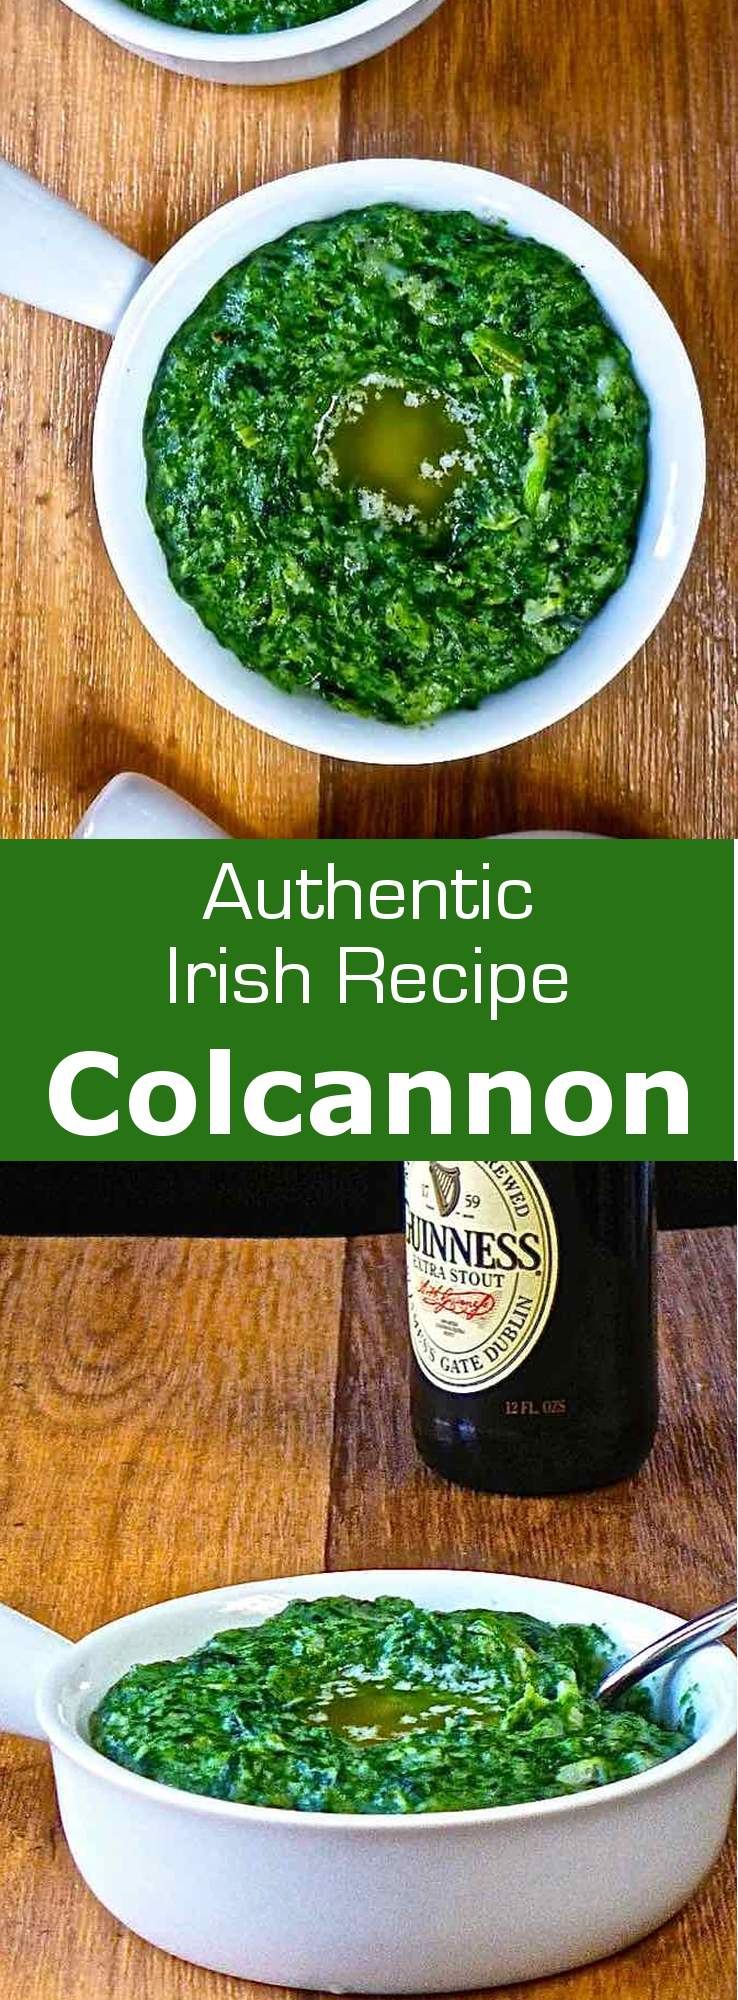 Colcannon (from Gaelic meaning white-headed cabbage), is a traditional Irish dish made ​​from potatoes, cabbage or kale, leek or scallion and cream. #ireland #196flavors